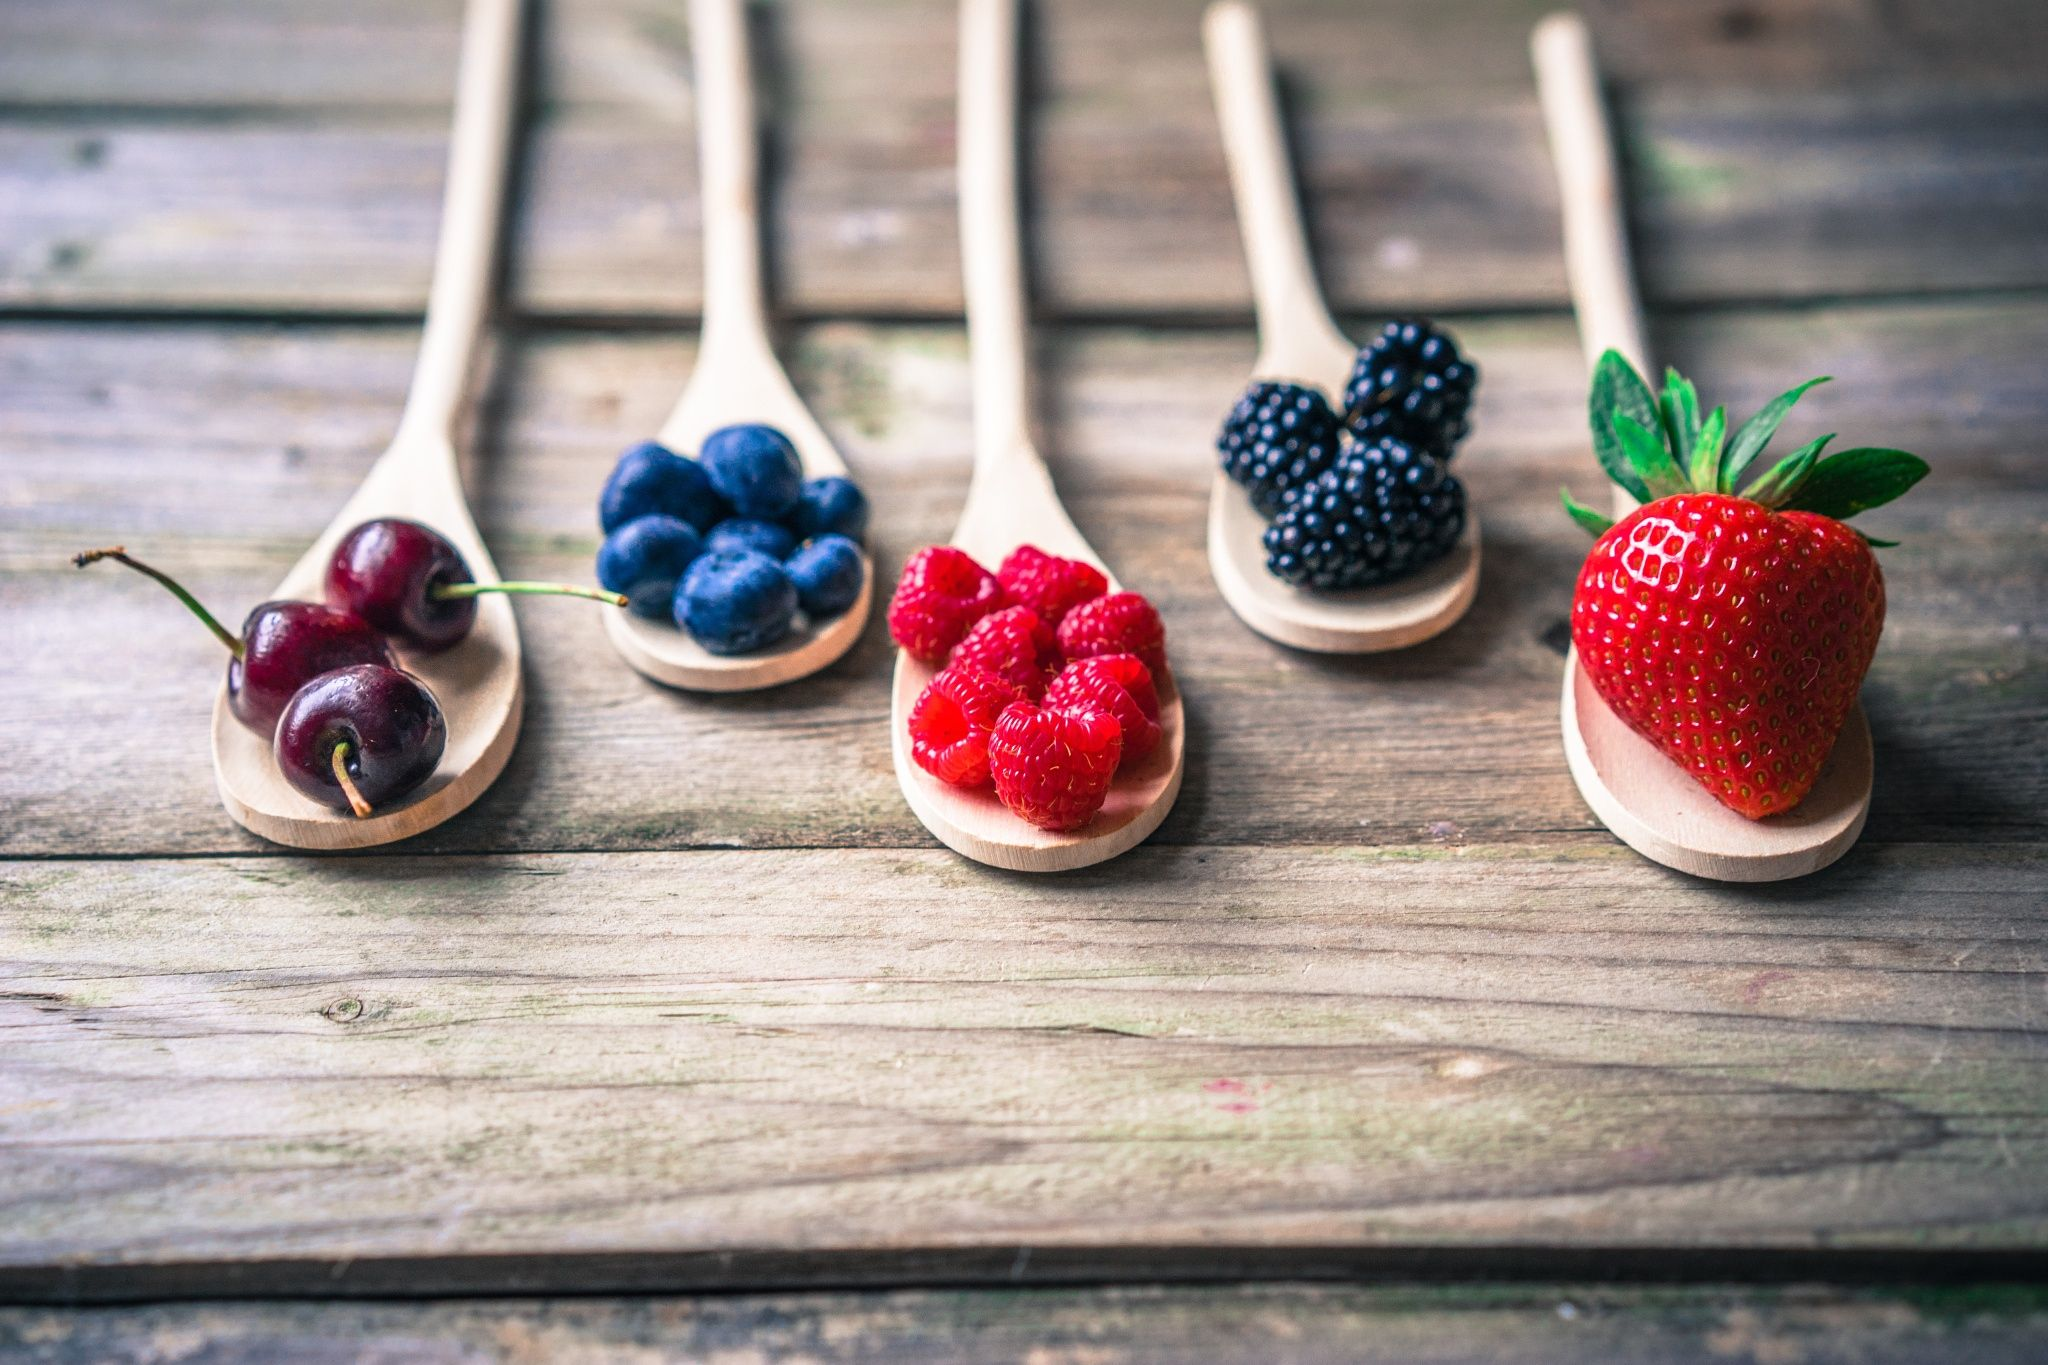 Berries on wooden rustic background by Alena Haurylik on 500px